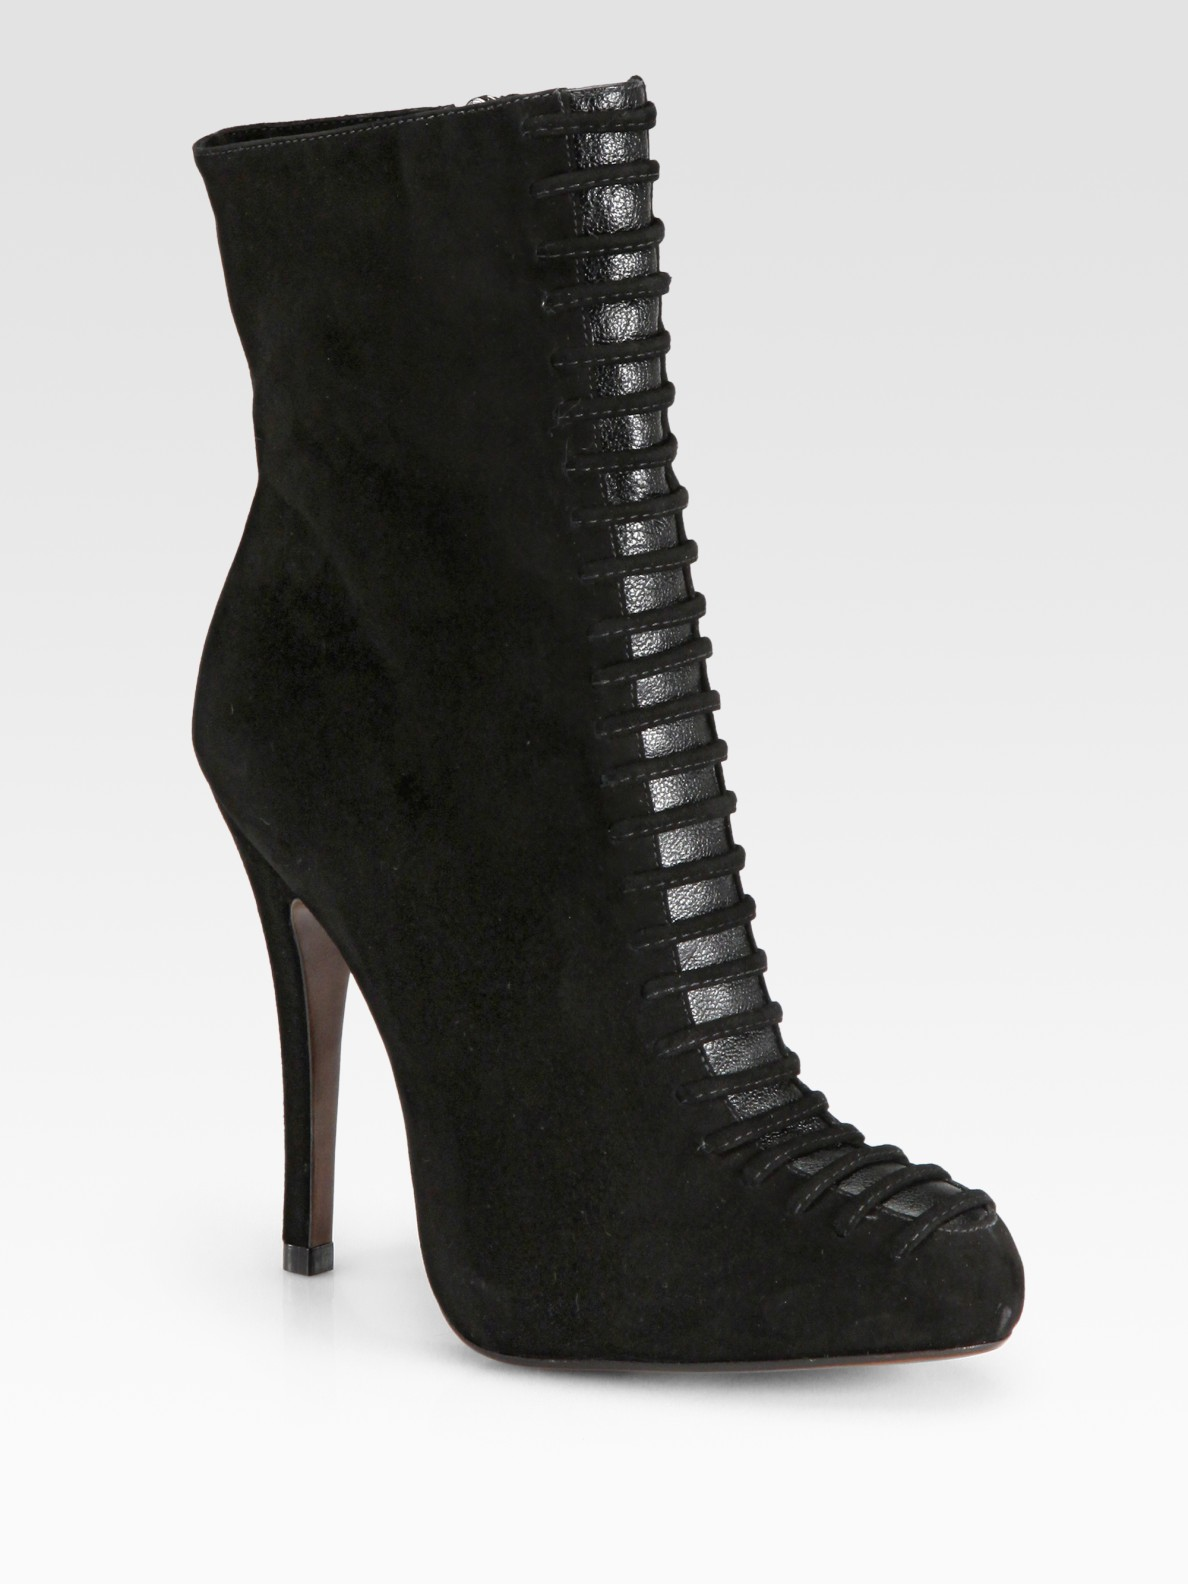 alexandre birman suede lace up ankle boots in black lyst